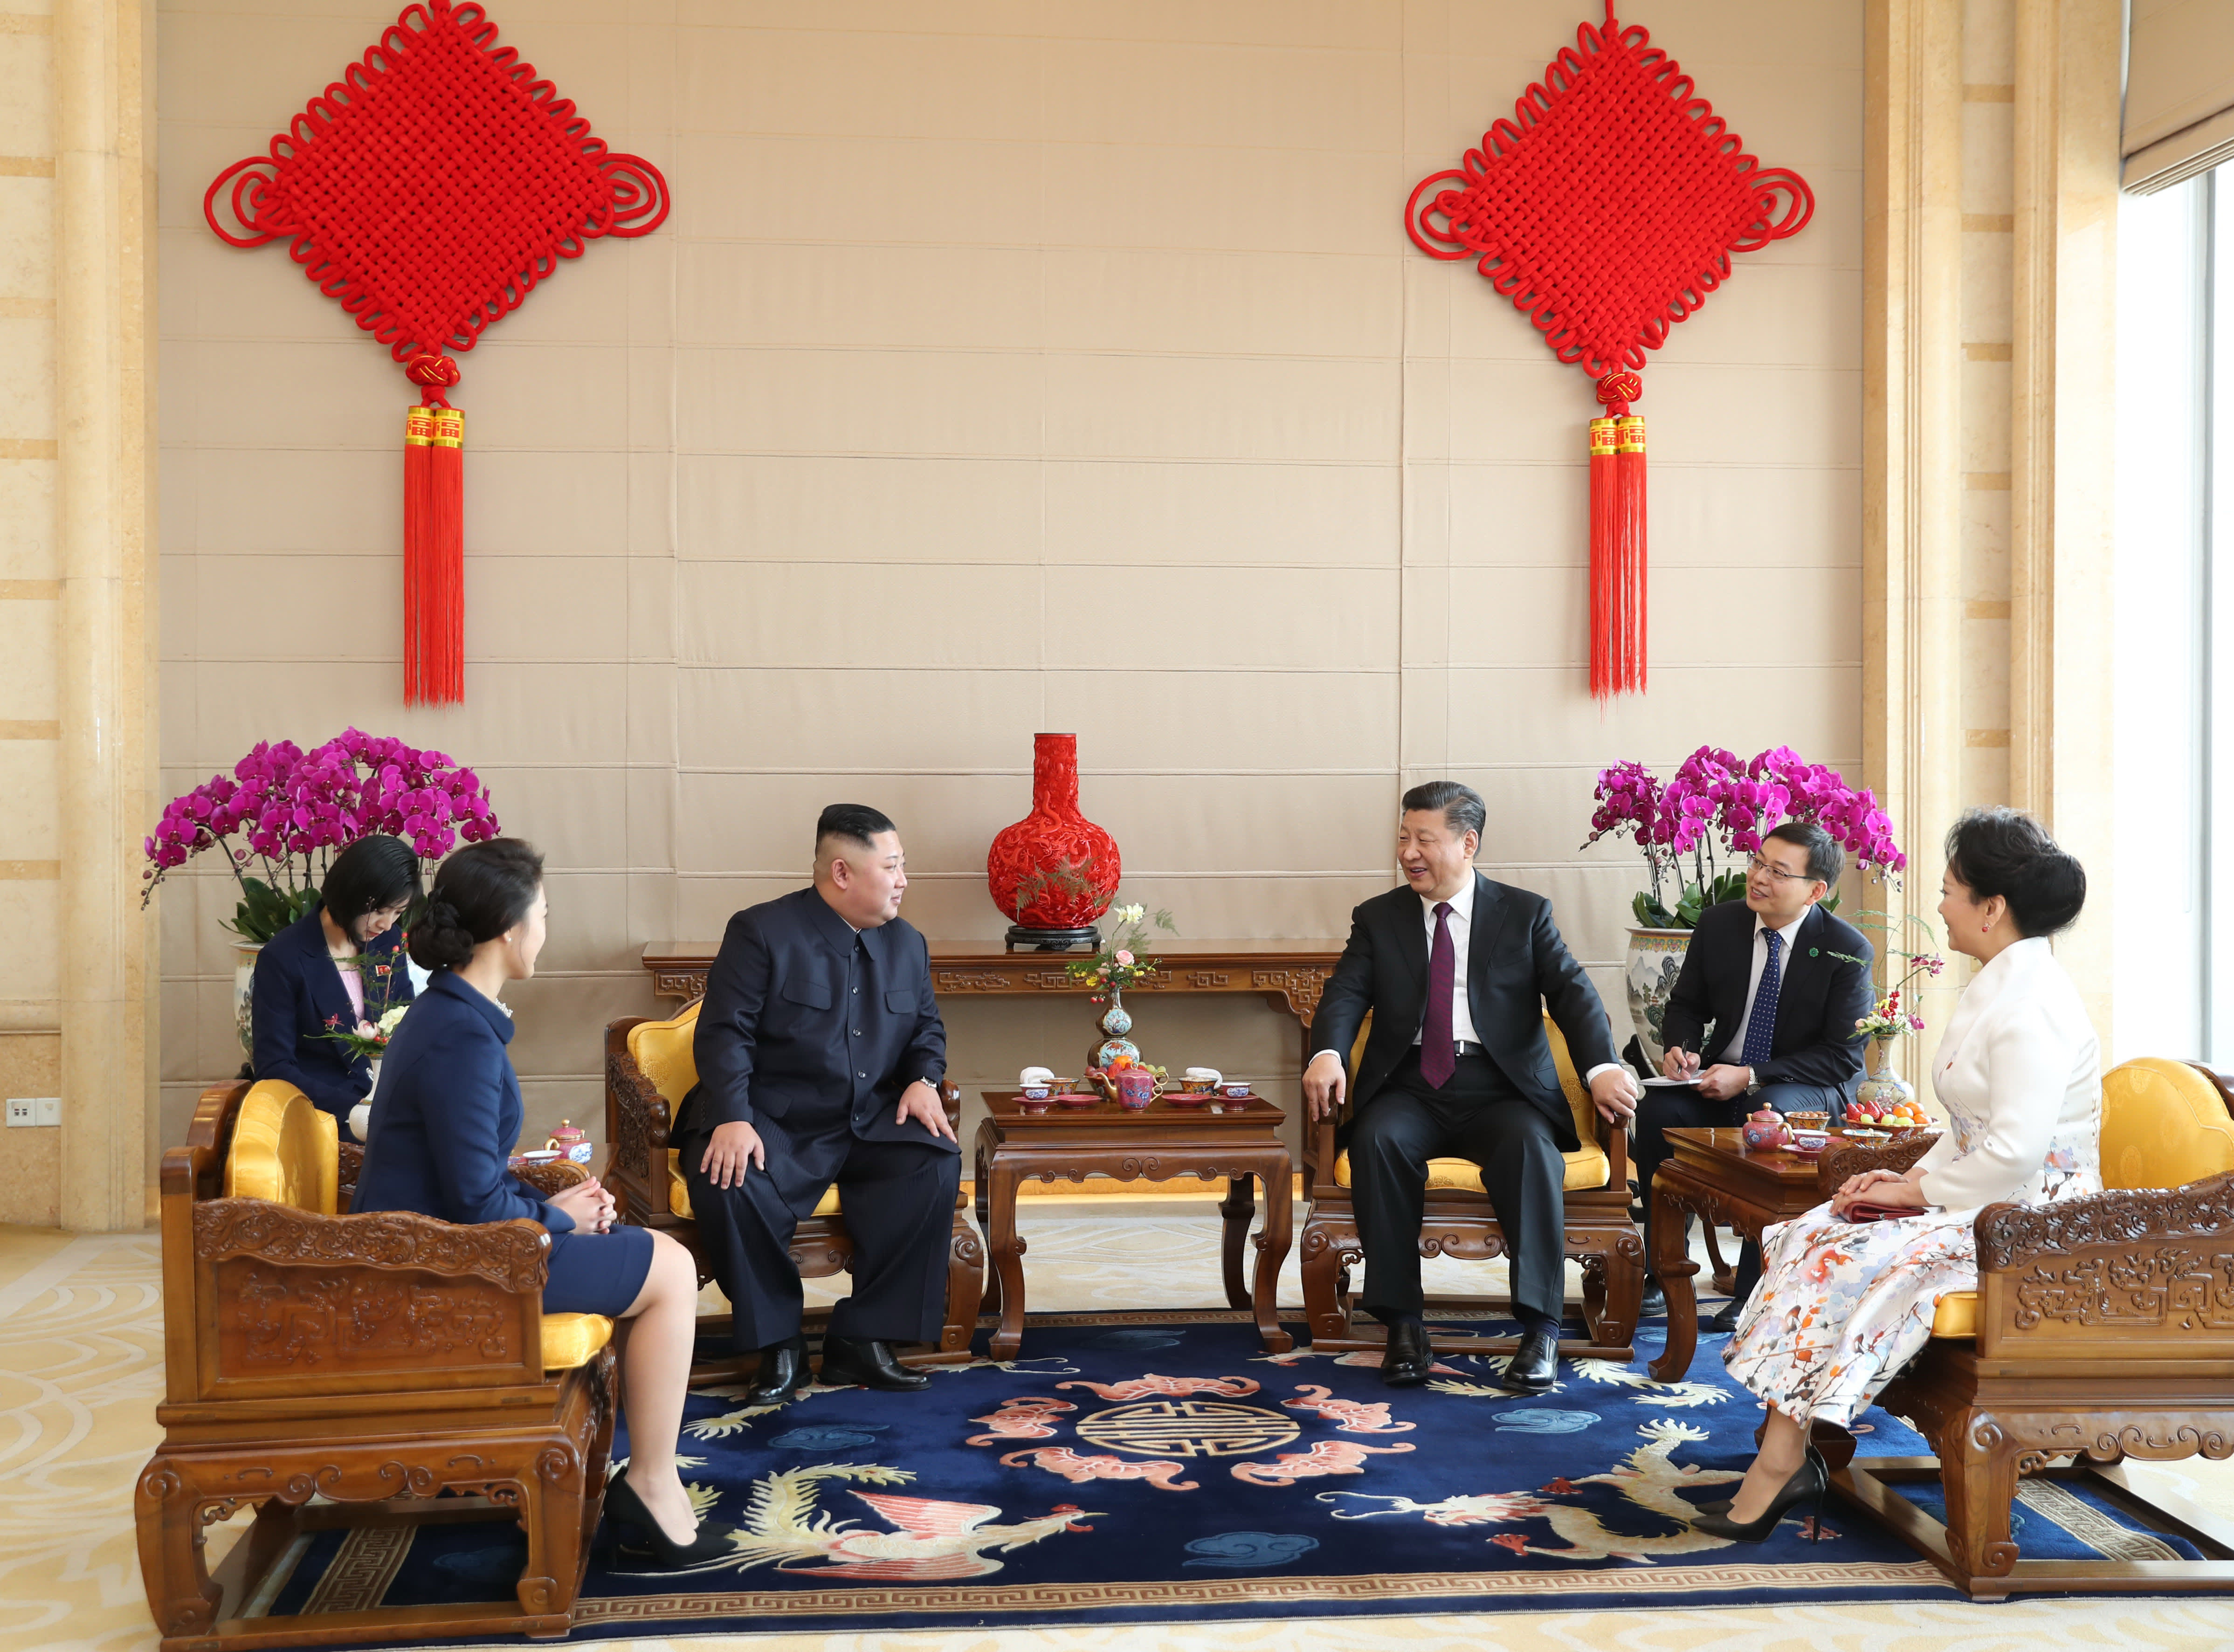 Ahead of a visit to North Korea, China's Xi says he supports denuclearization